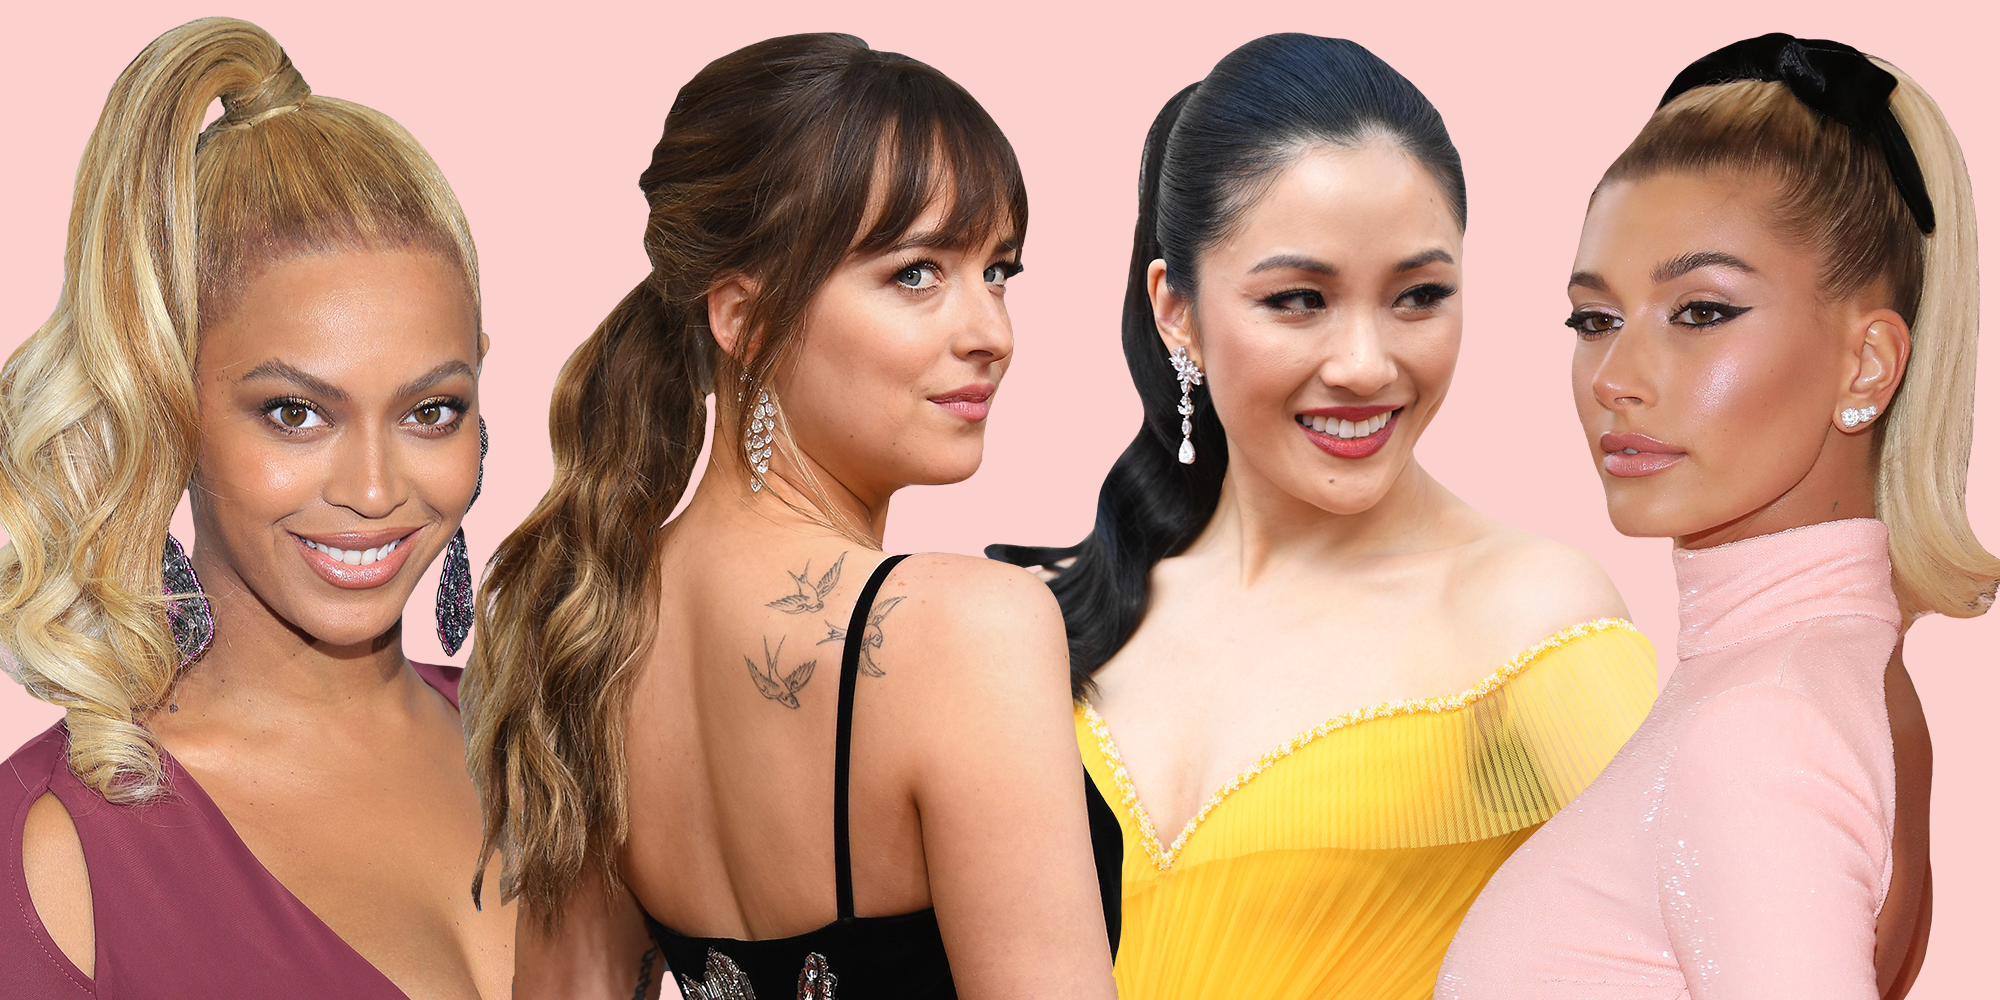 These 20 Ponytail Hairstyles Take Your Look to the Next Level